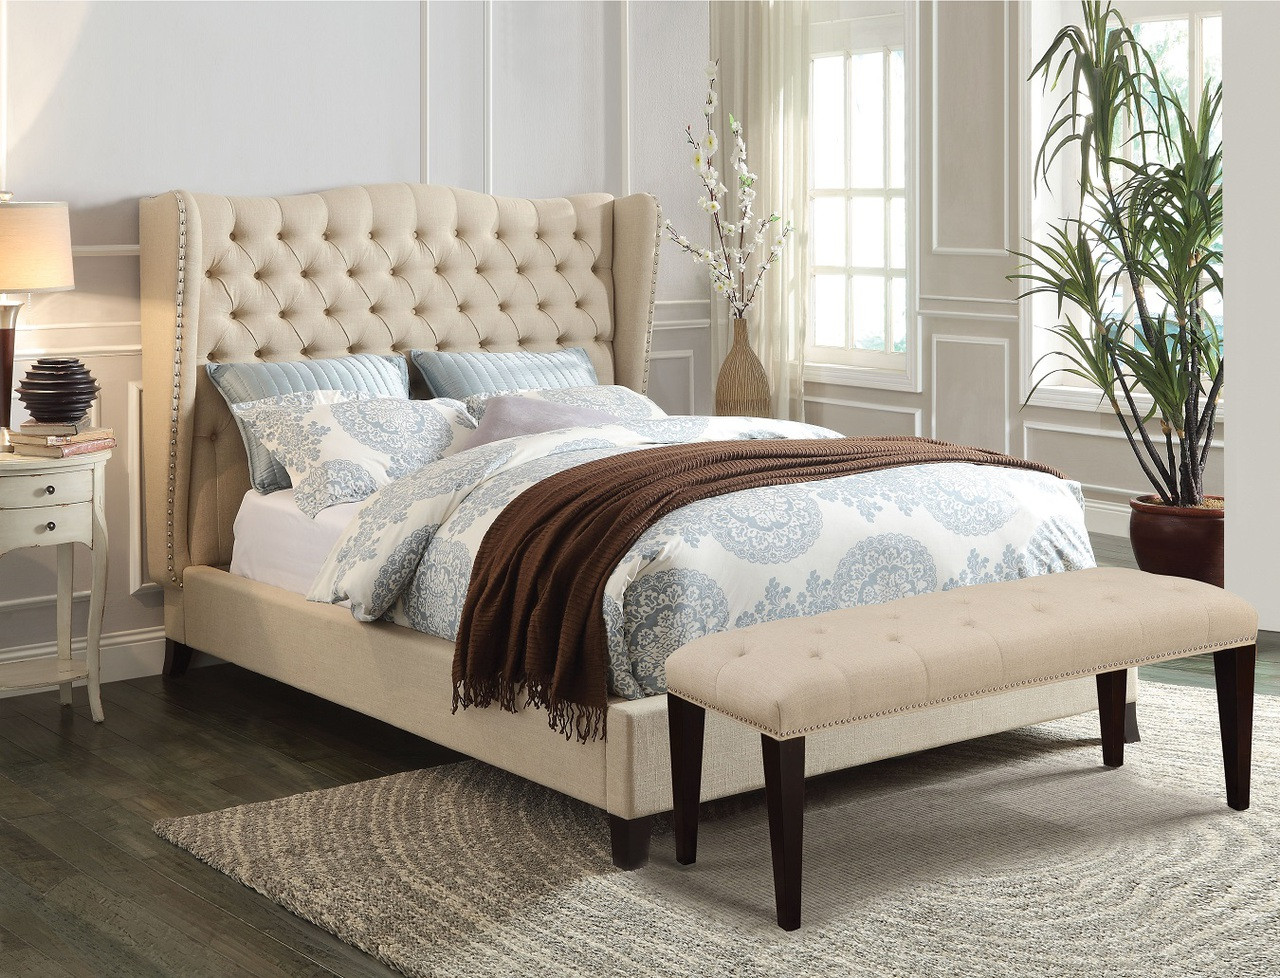 Wing Back Button Tufted Upholstered Platform Bed In Red · Beige Bed ...